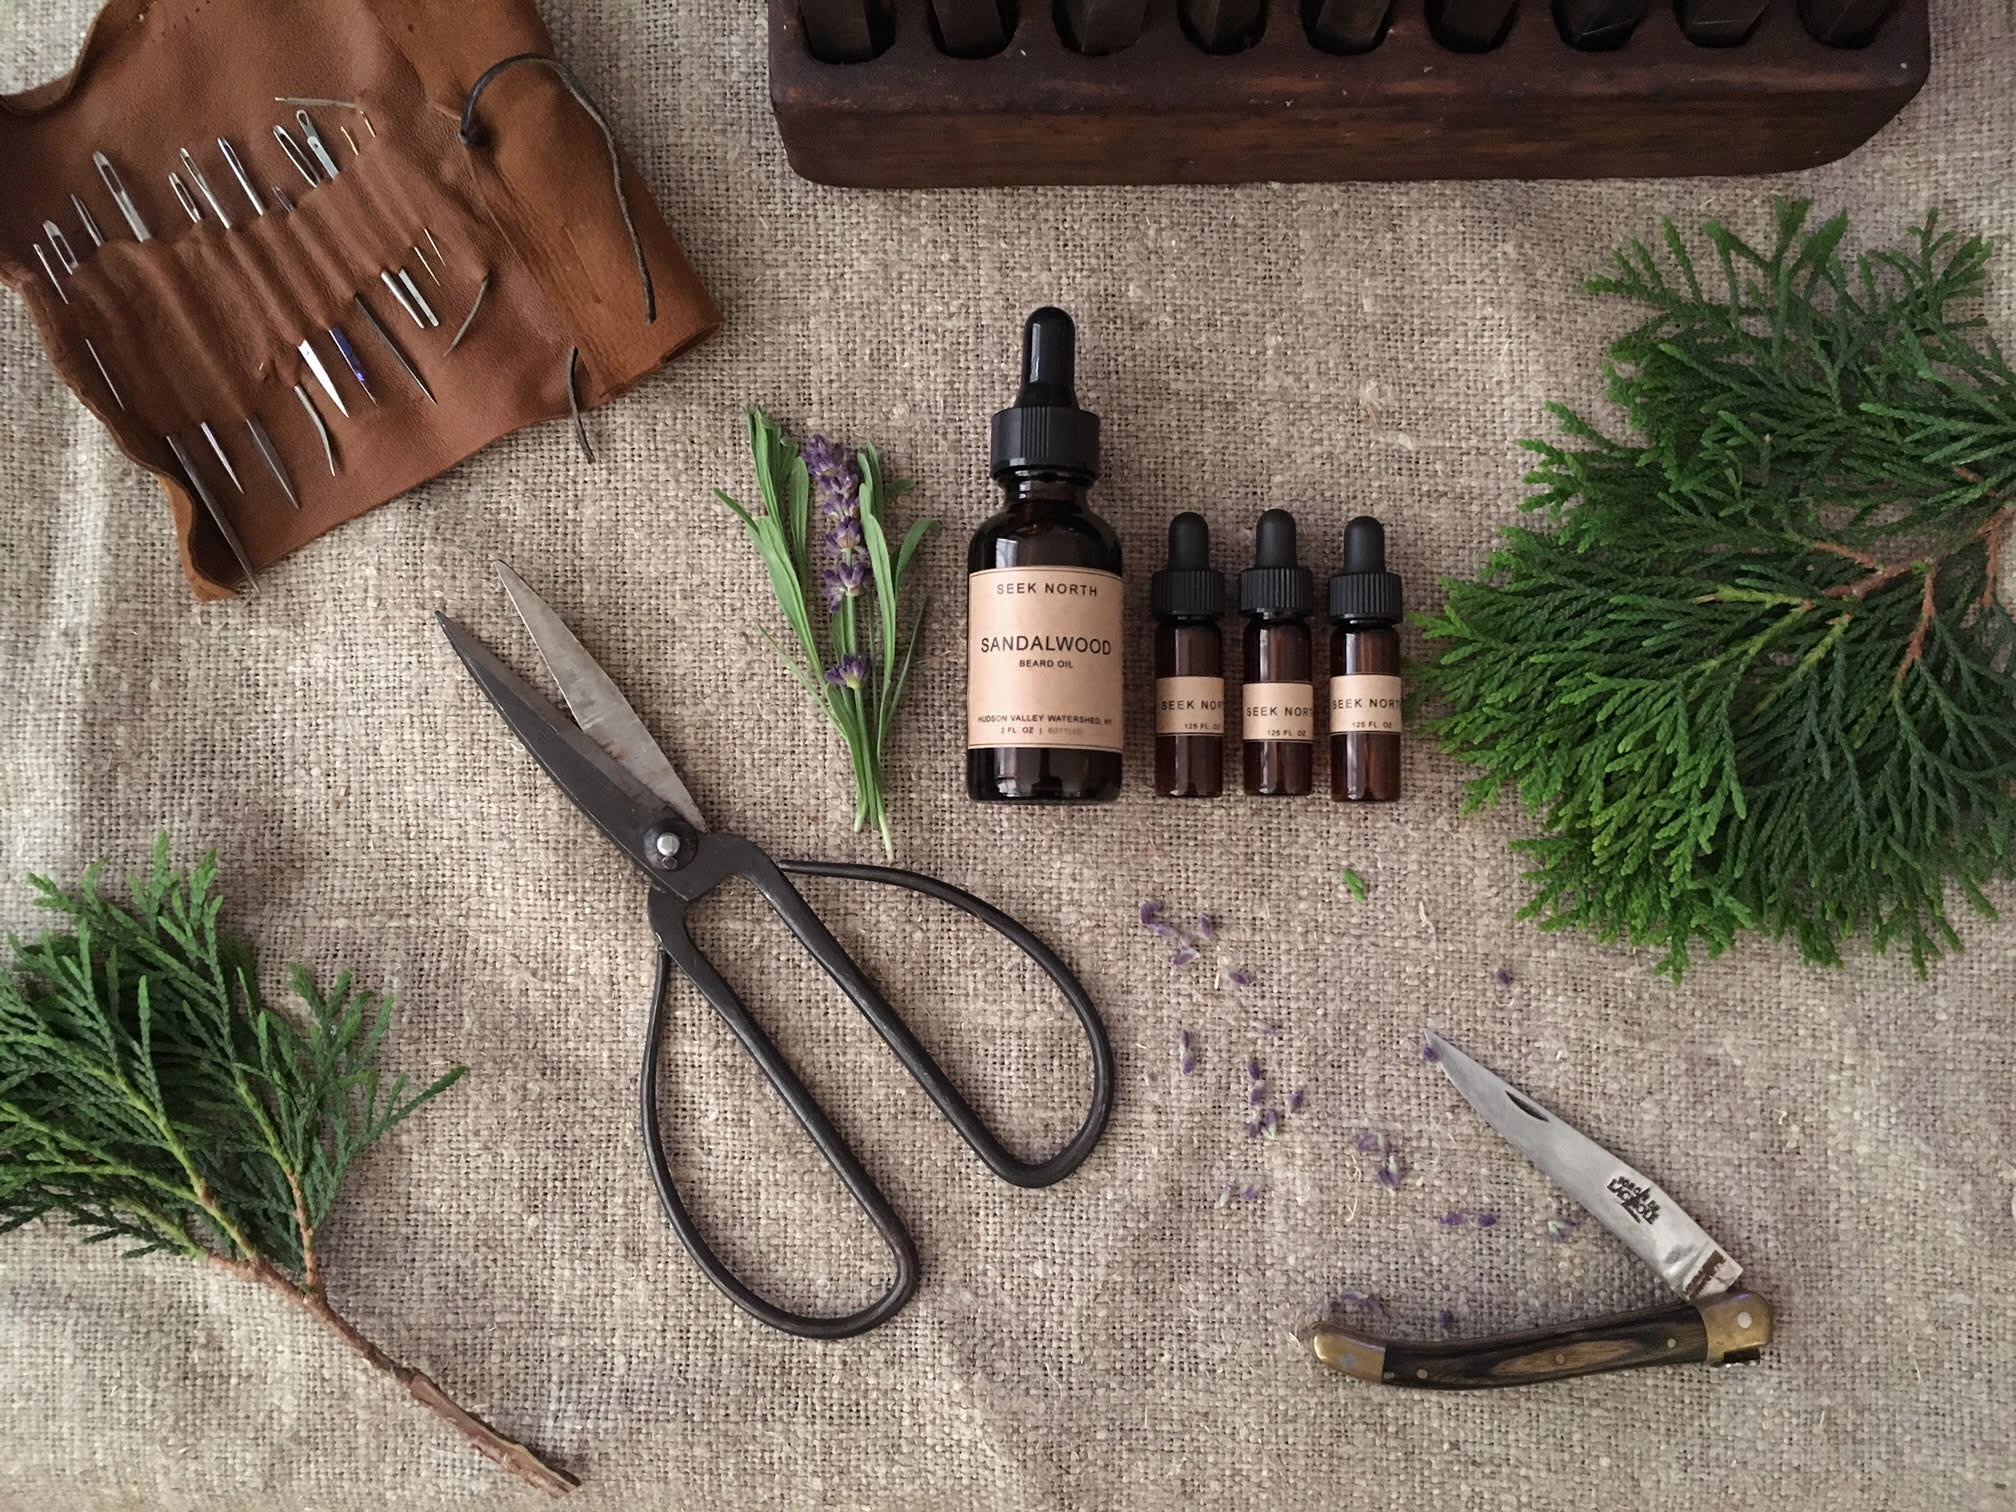 ALL NATURAL  - NO FILLERS, CHEMICALS, SYNTHETIC FRAGRANCES